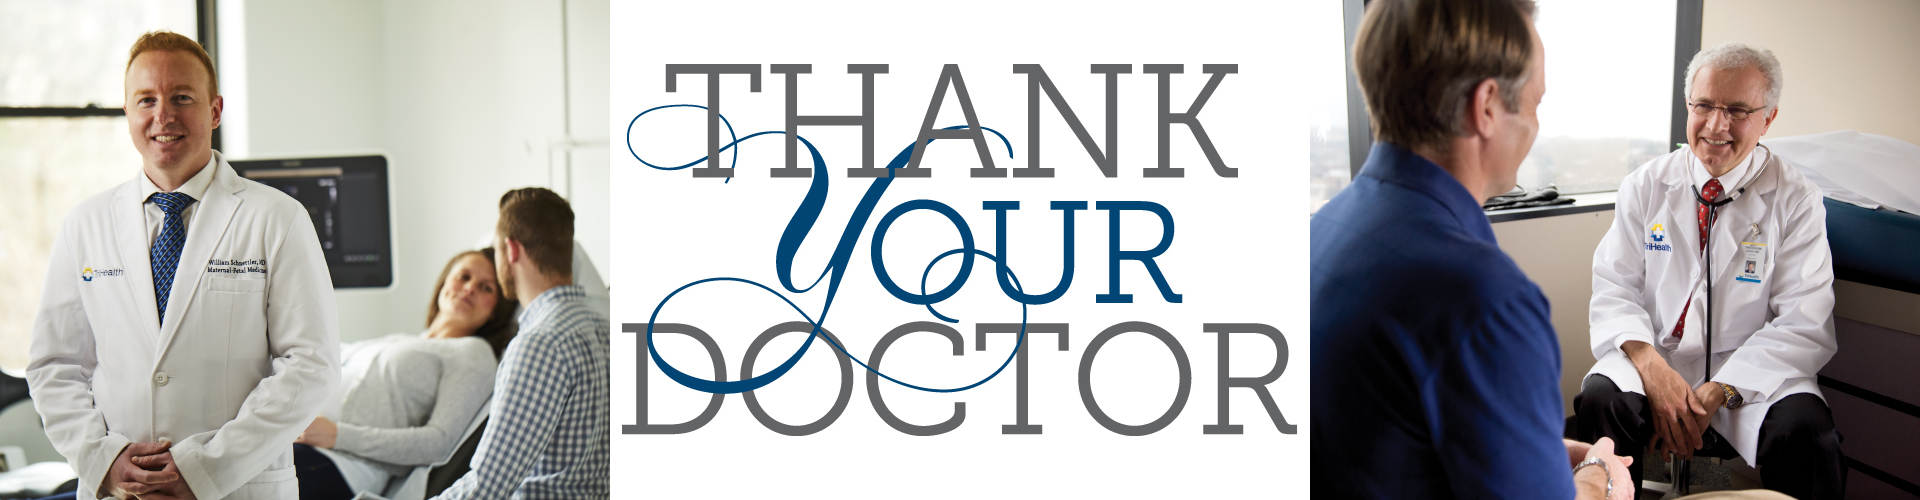 Thank Your Doctor